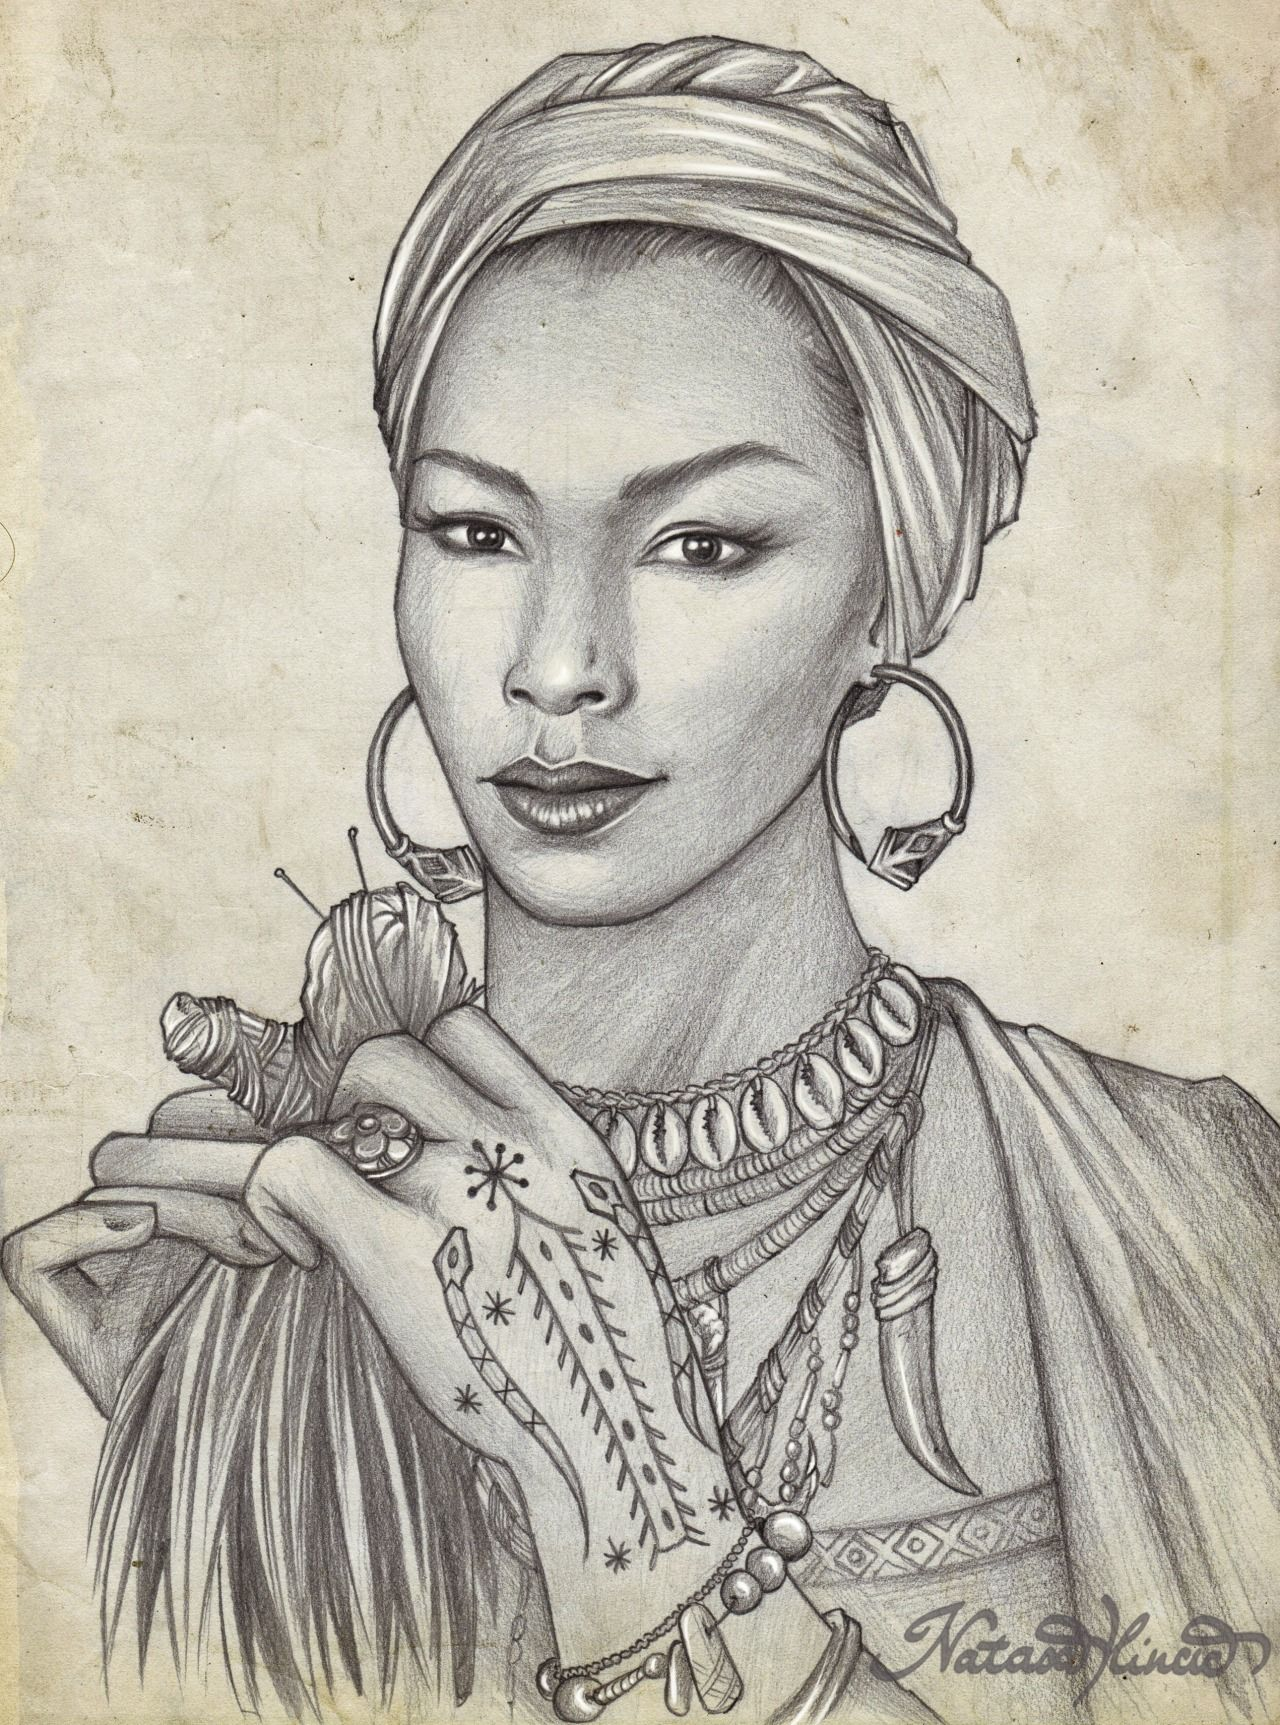 THE CREOLE WITCH